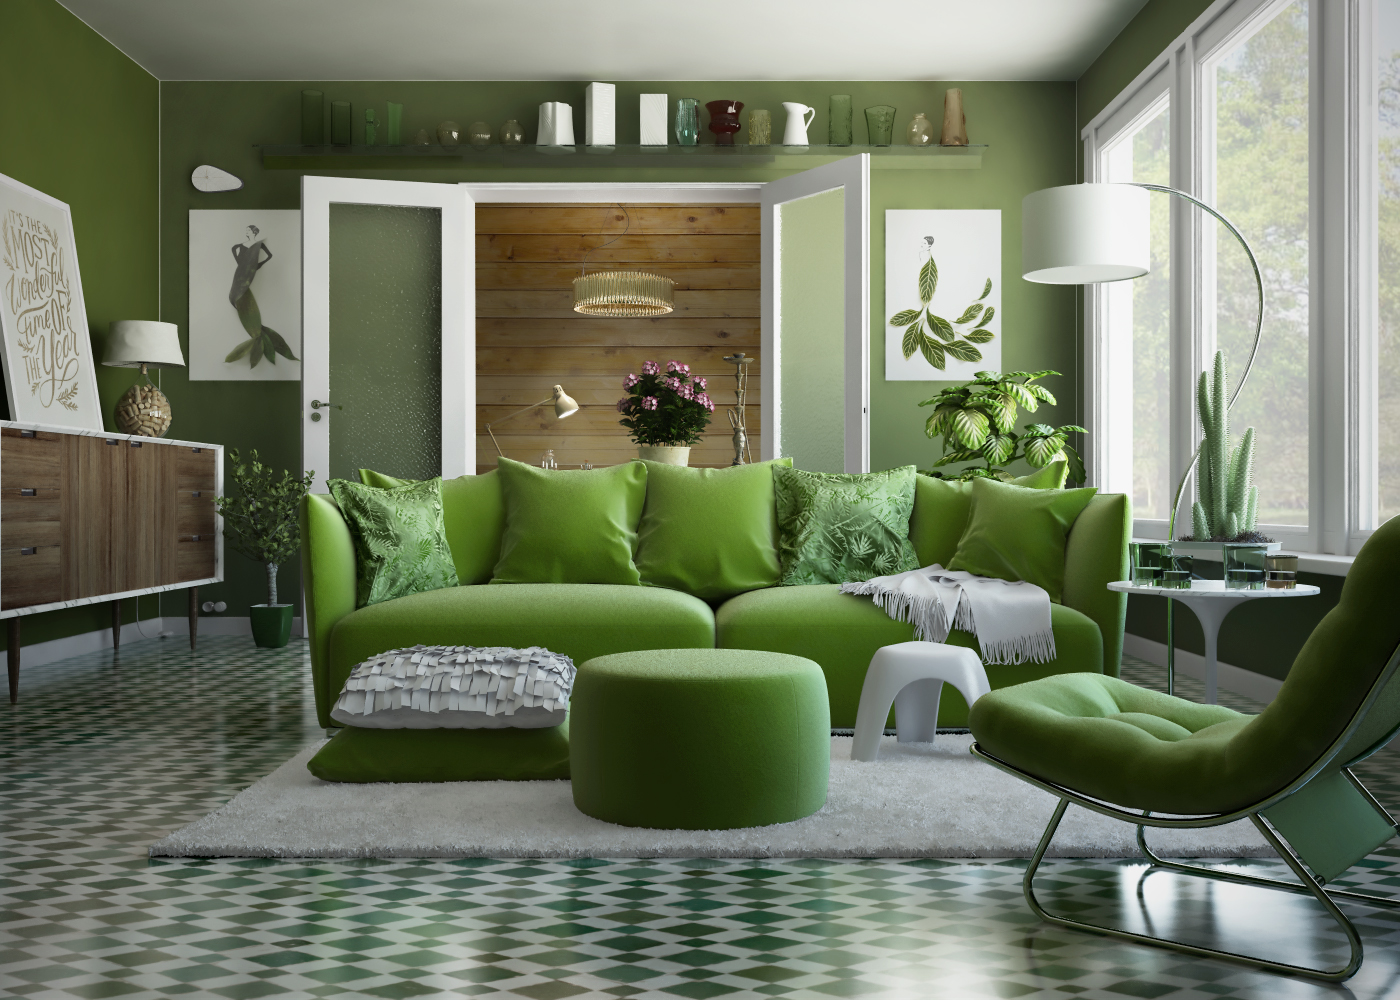 Olive green living room ideas living room colour schemes for Olive green dining room ideas